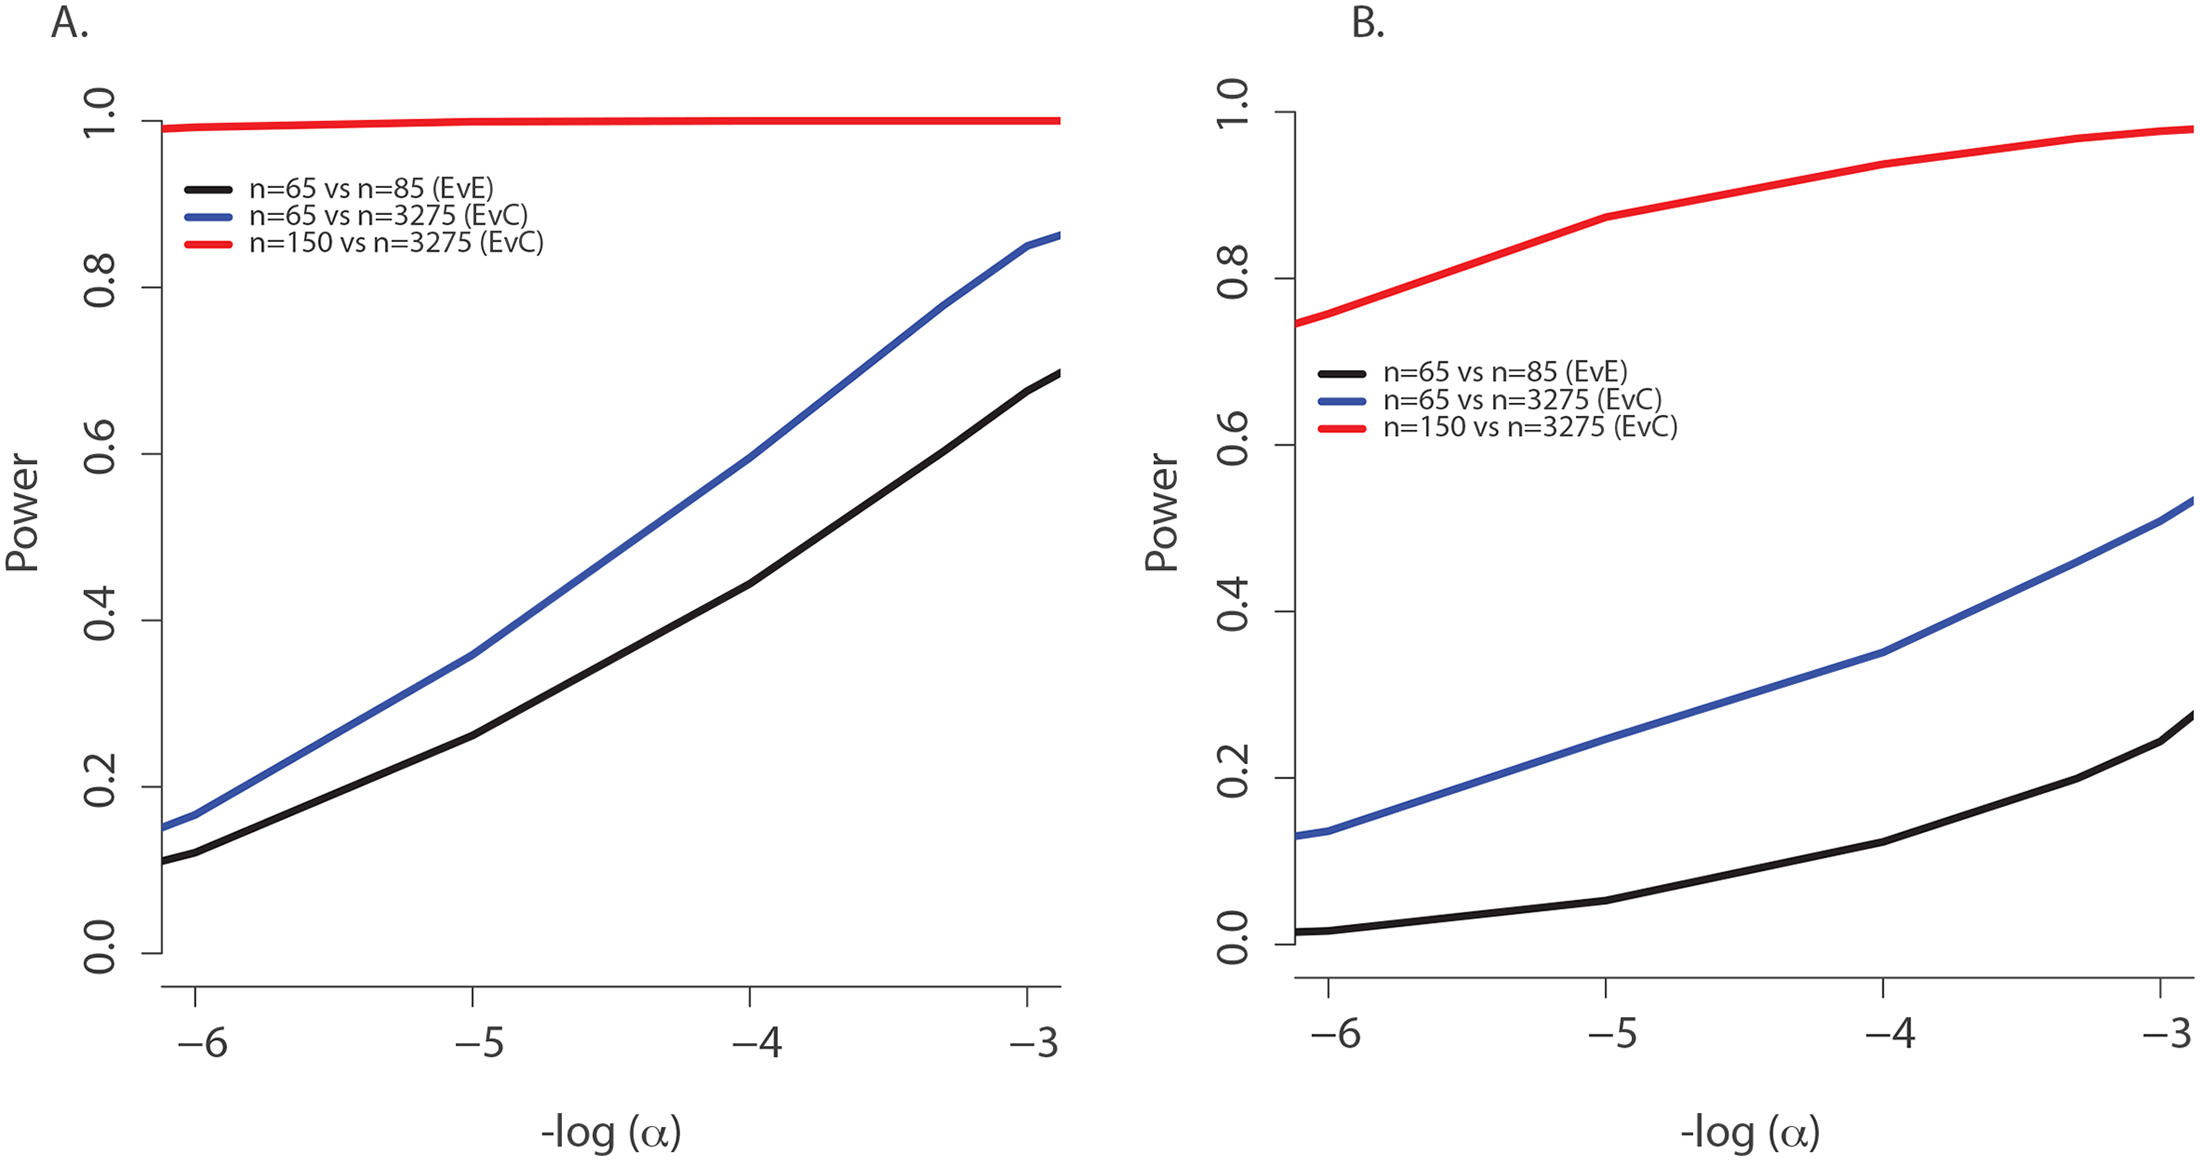 Power to discover <i>TMC6</i> with aSKAT-O for a test of size α under the actual ages of the individuals in the extreme samples in this study.